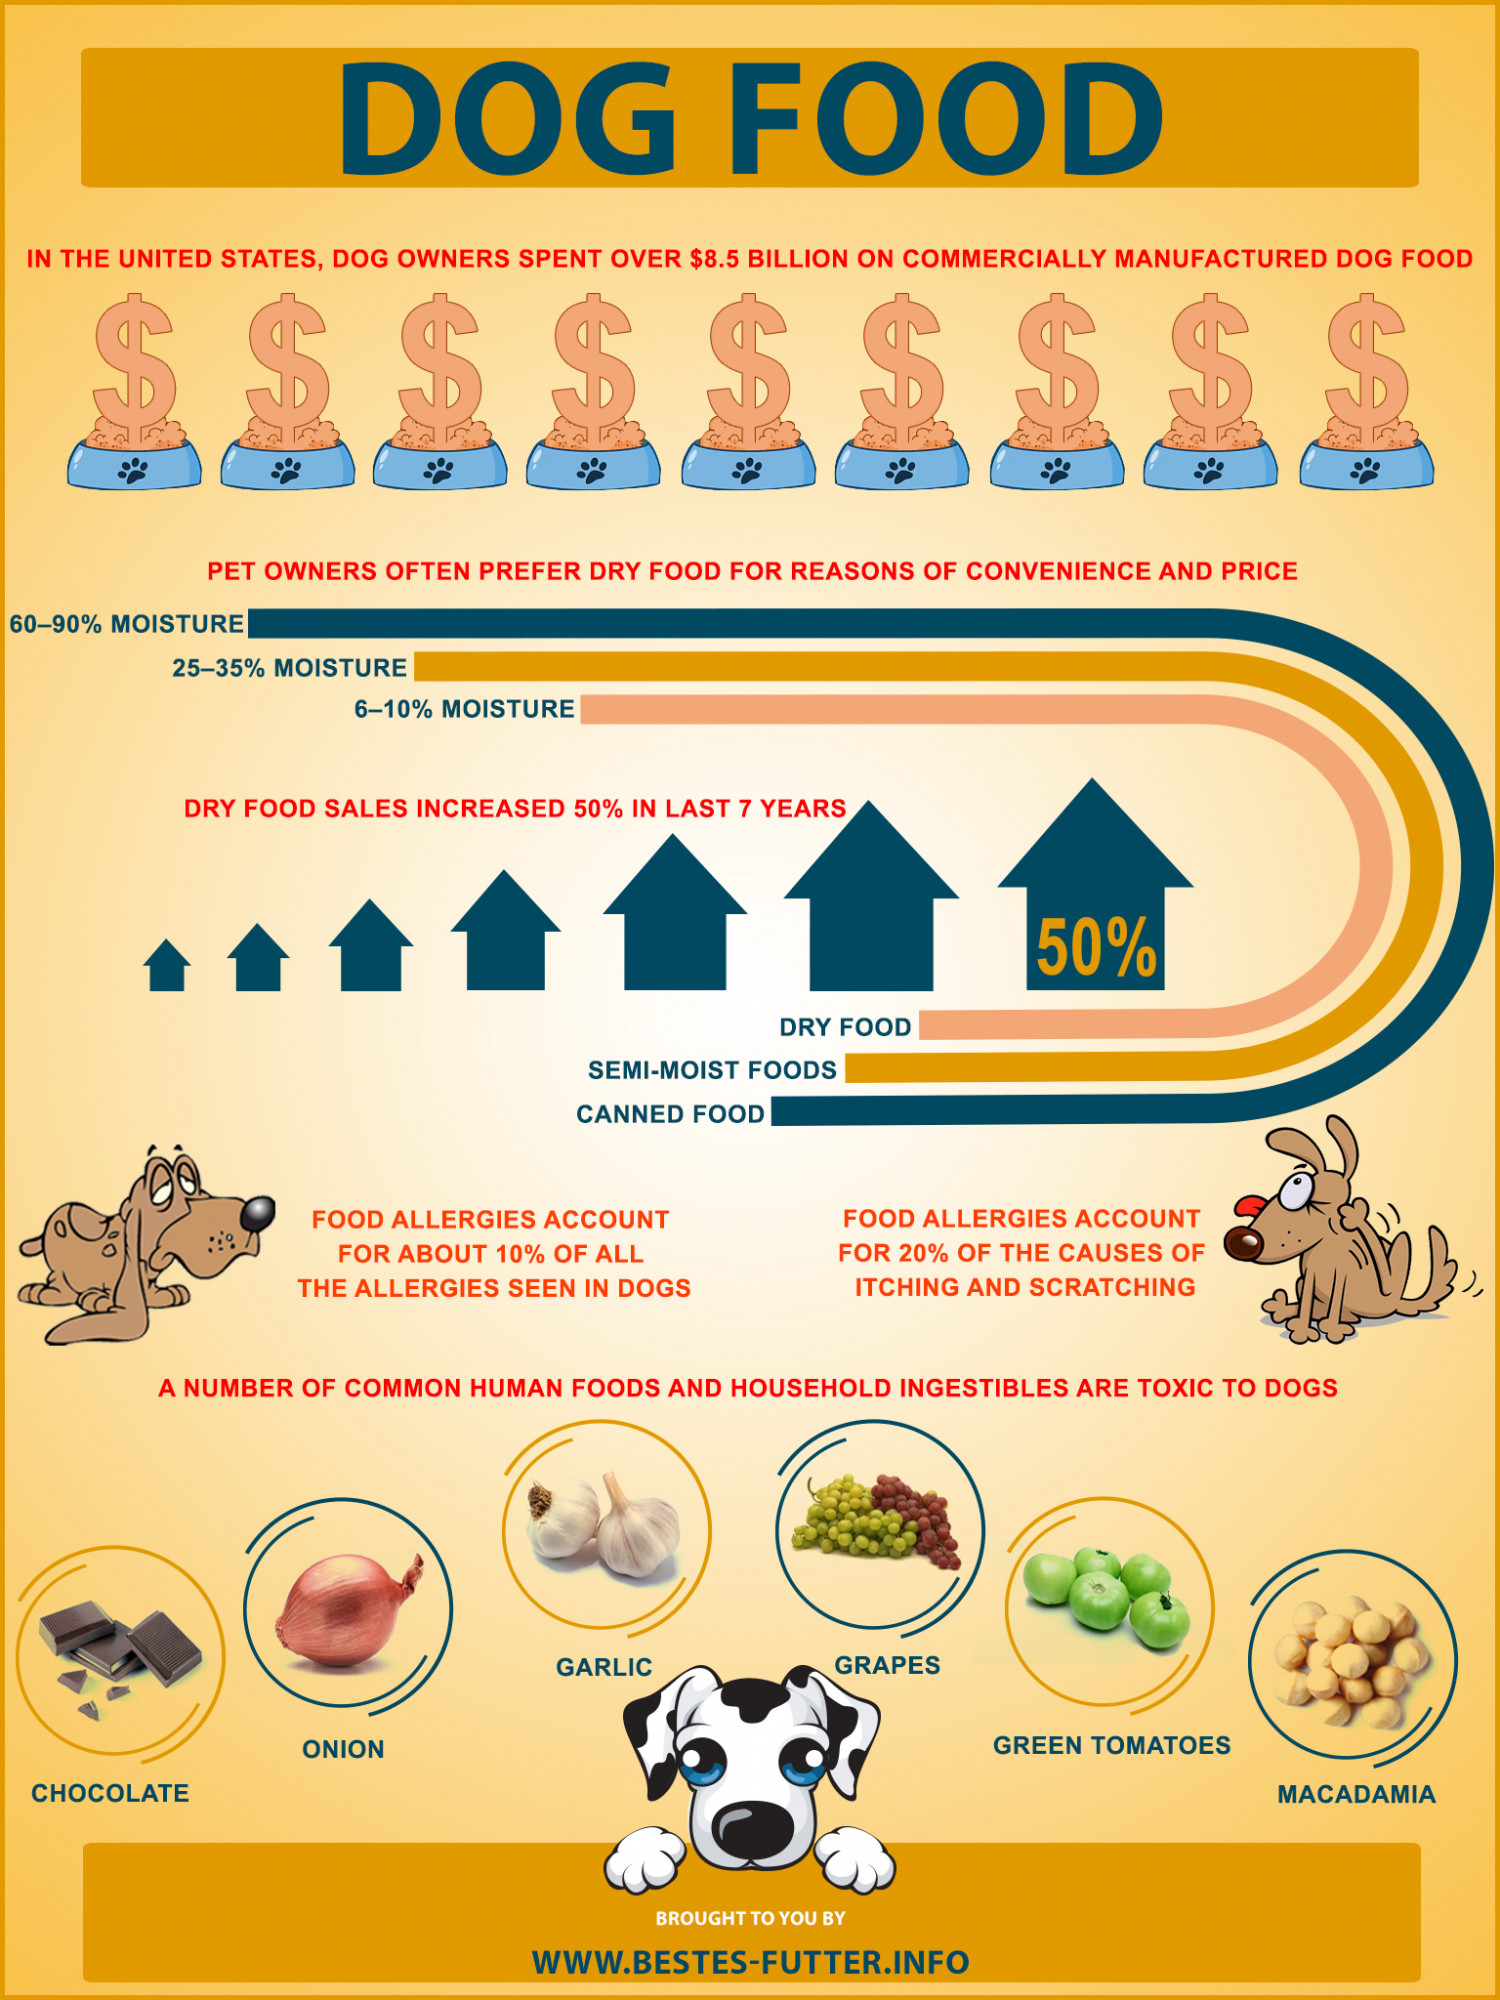 Bestes Futter, Infos about dog food Infographic